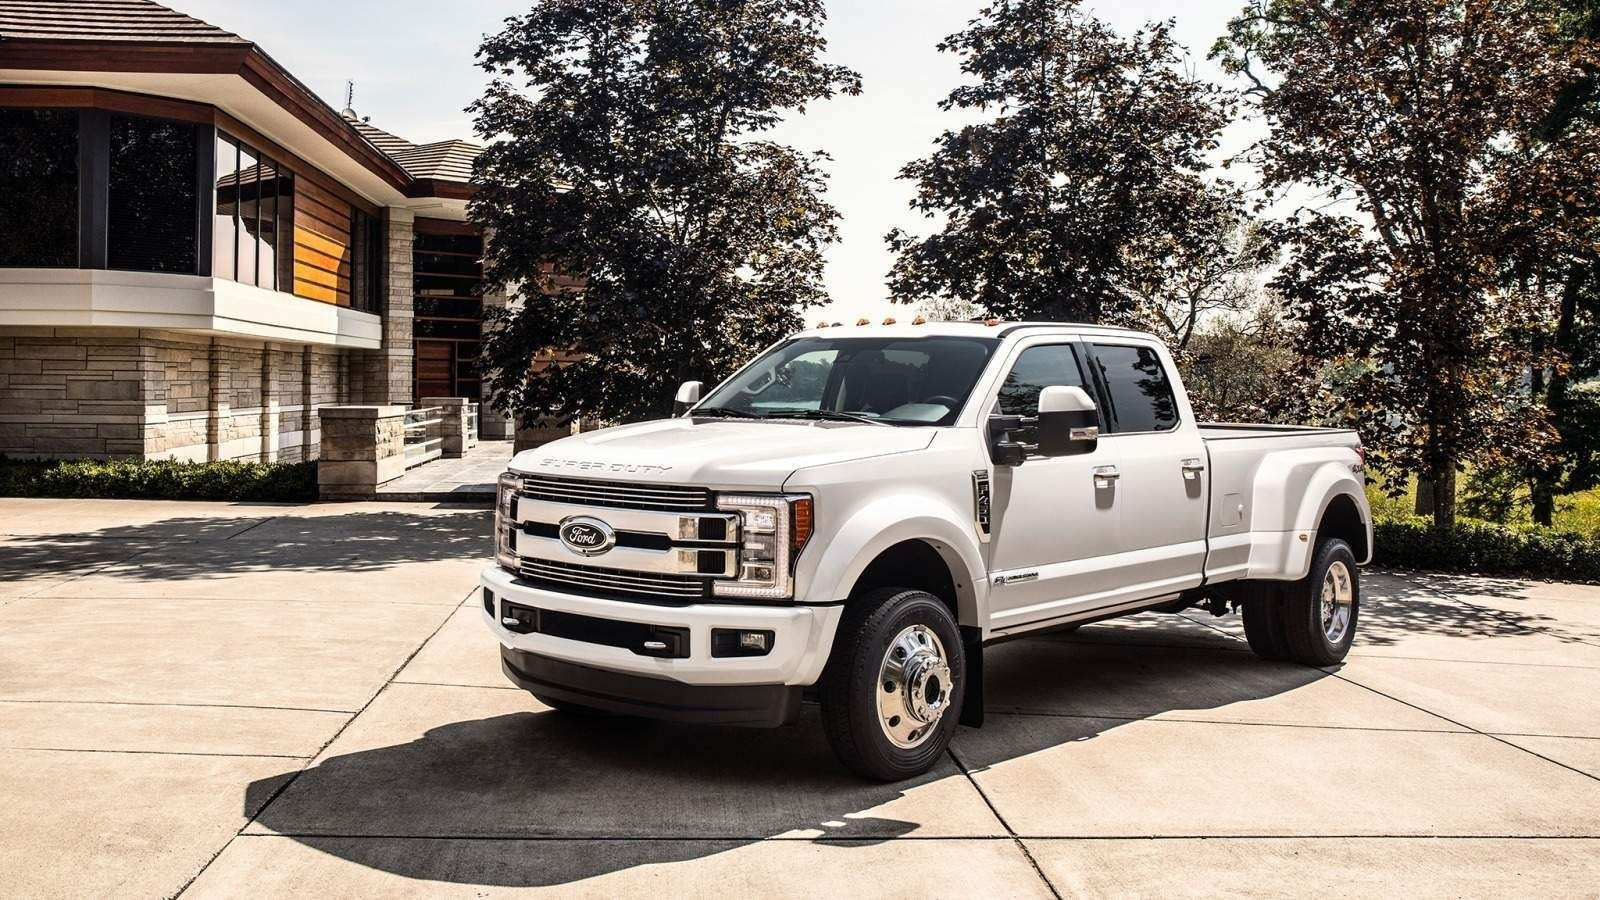 68 Best Review 2019 Ford Super Duty Order Guide Spy Shoot Wallpaper with 2019 Ford Super Duty Order Guide Spy Shoot